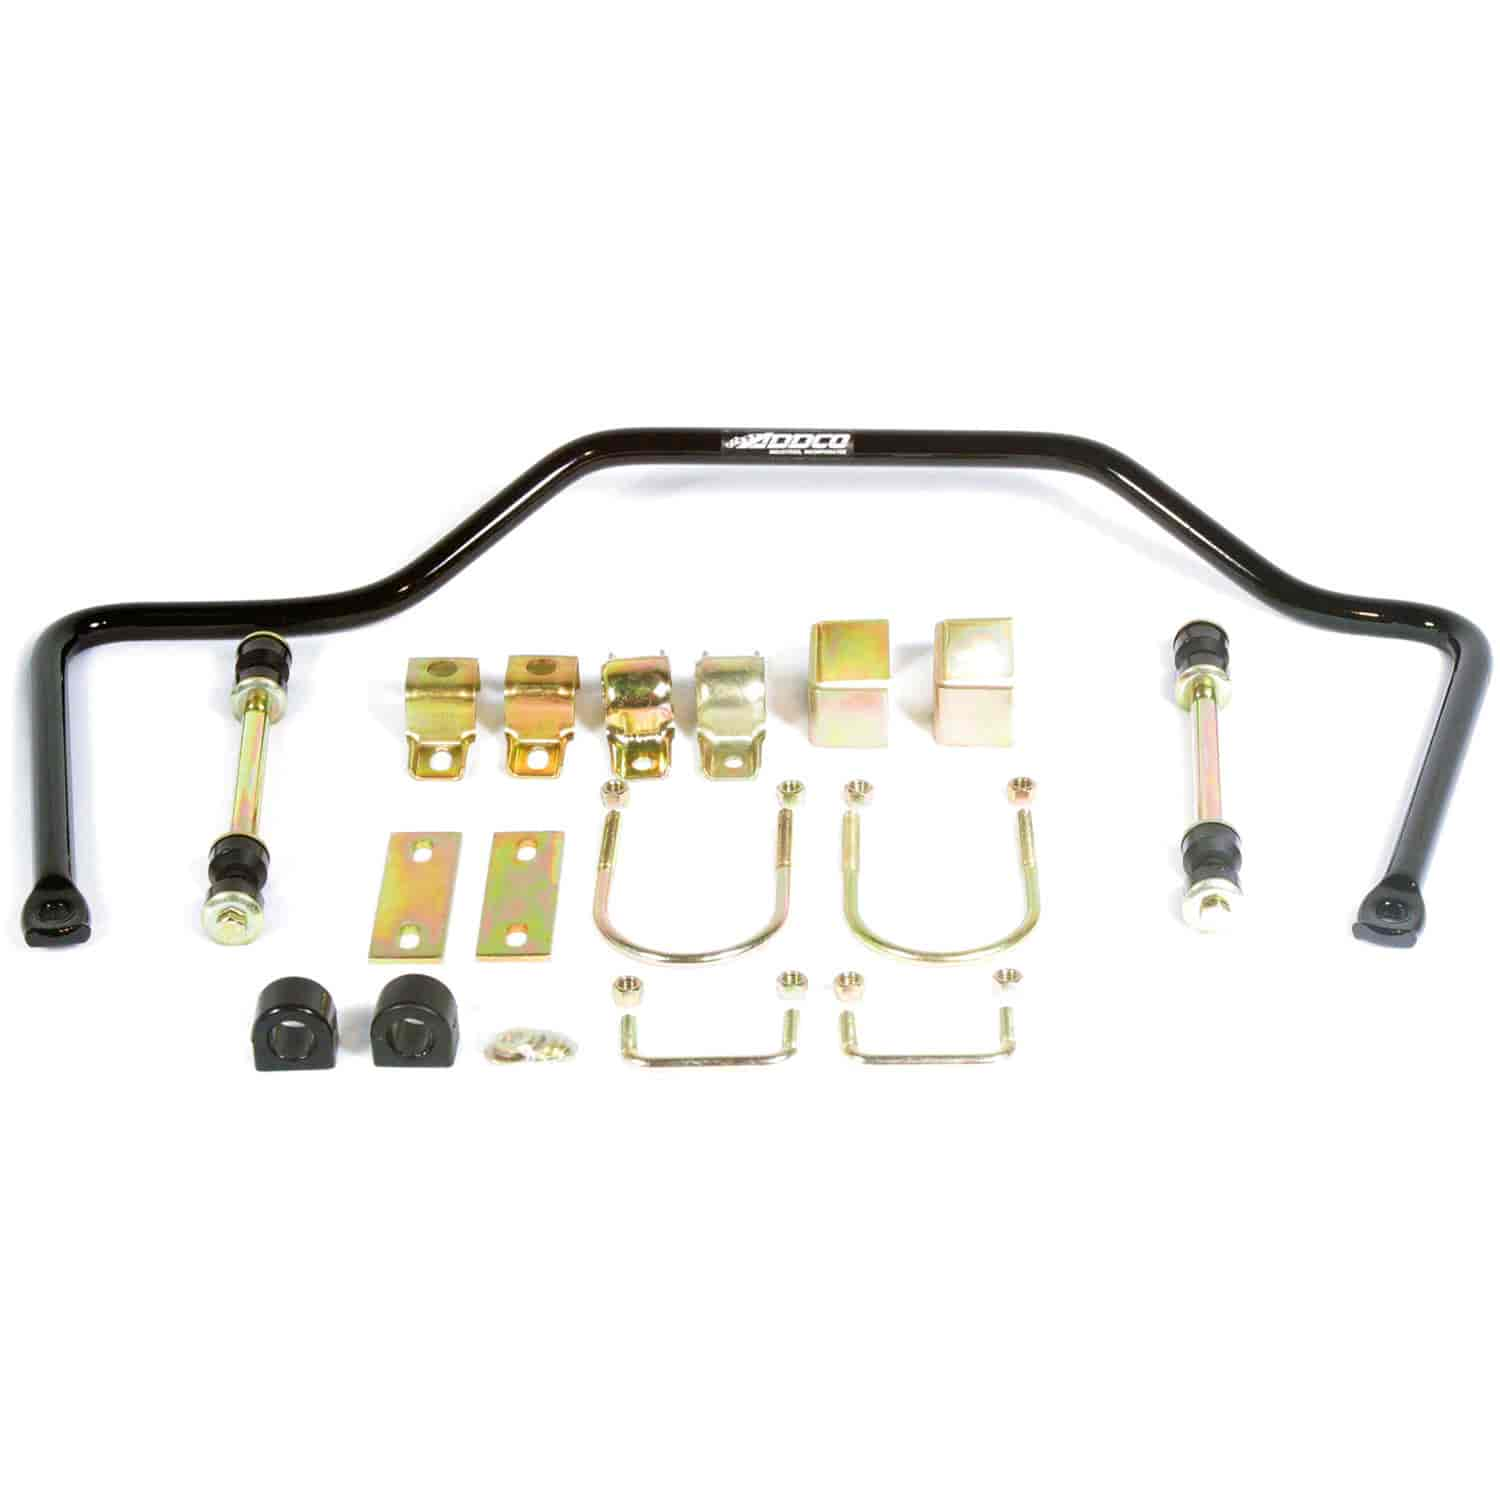 ADDCO 147 - ADDCO Ford/Lincoln/Mercury Sway Bar Kits